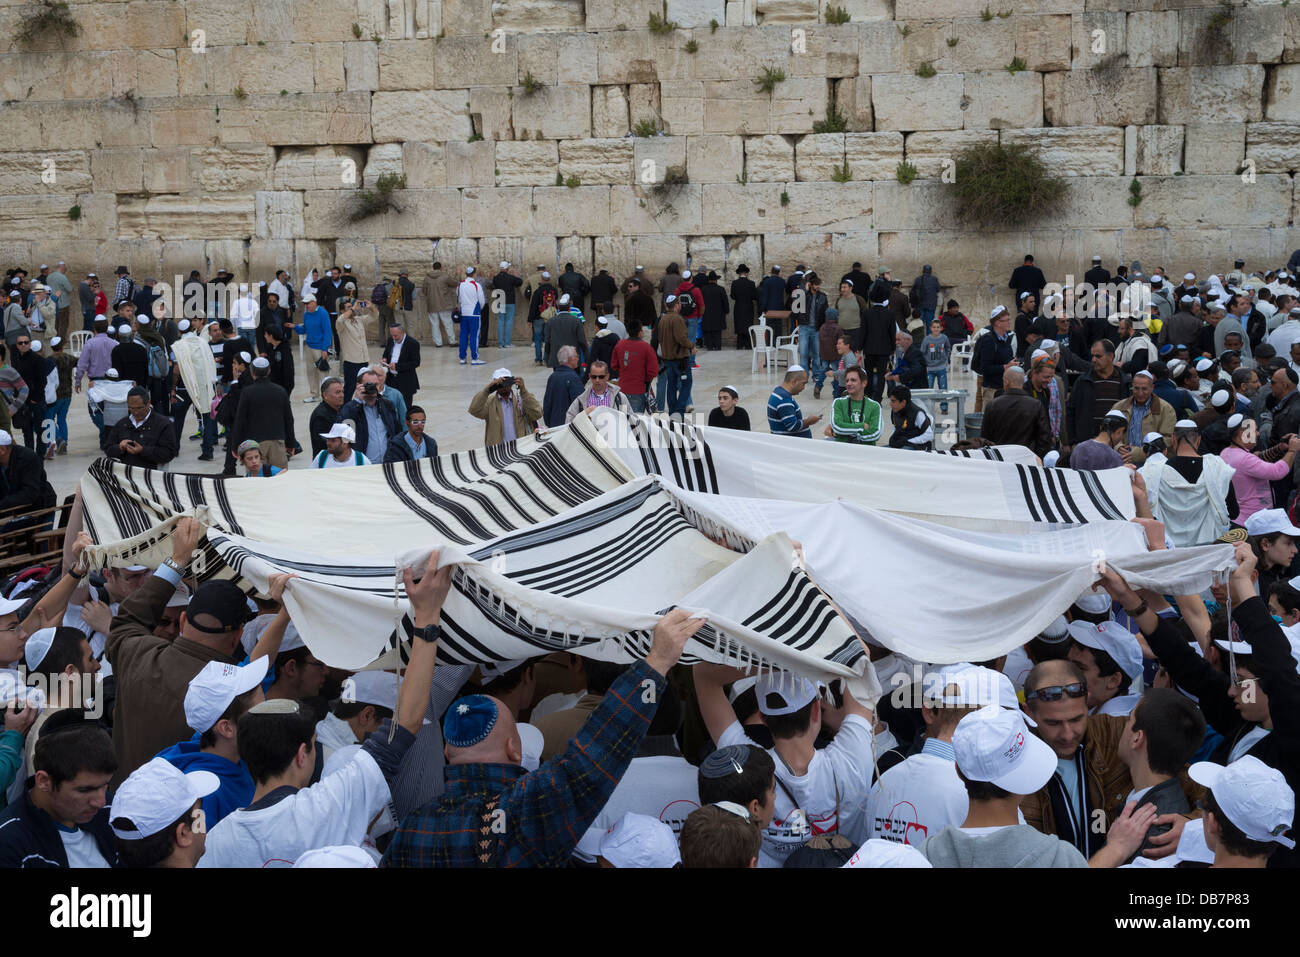 Worshippers holding prayer shawls above their heads. Western Wall. Jerusalem Old City. Israel. - Stock Image